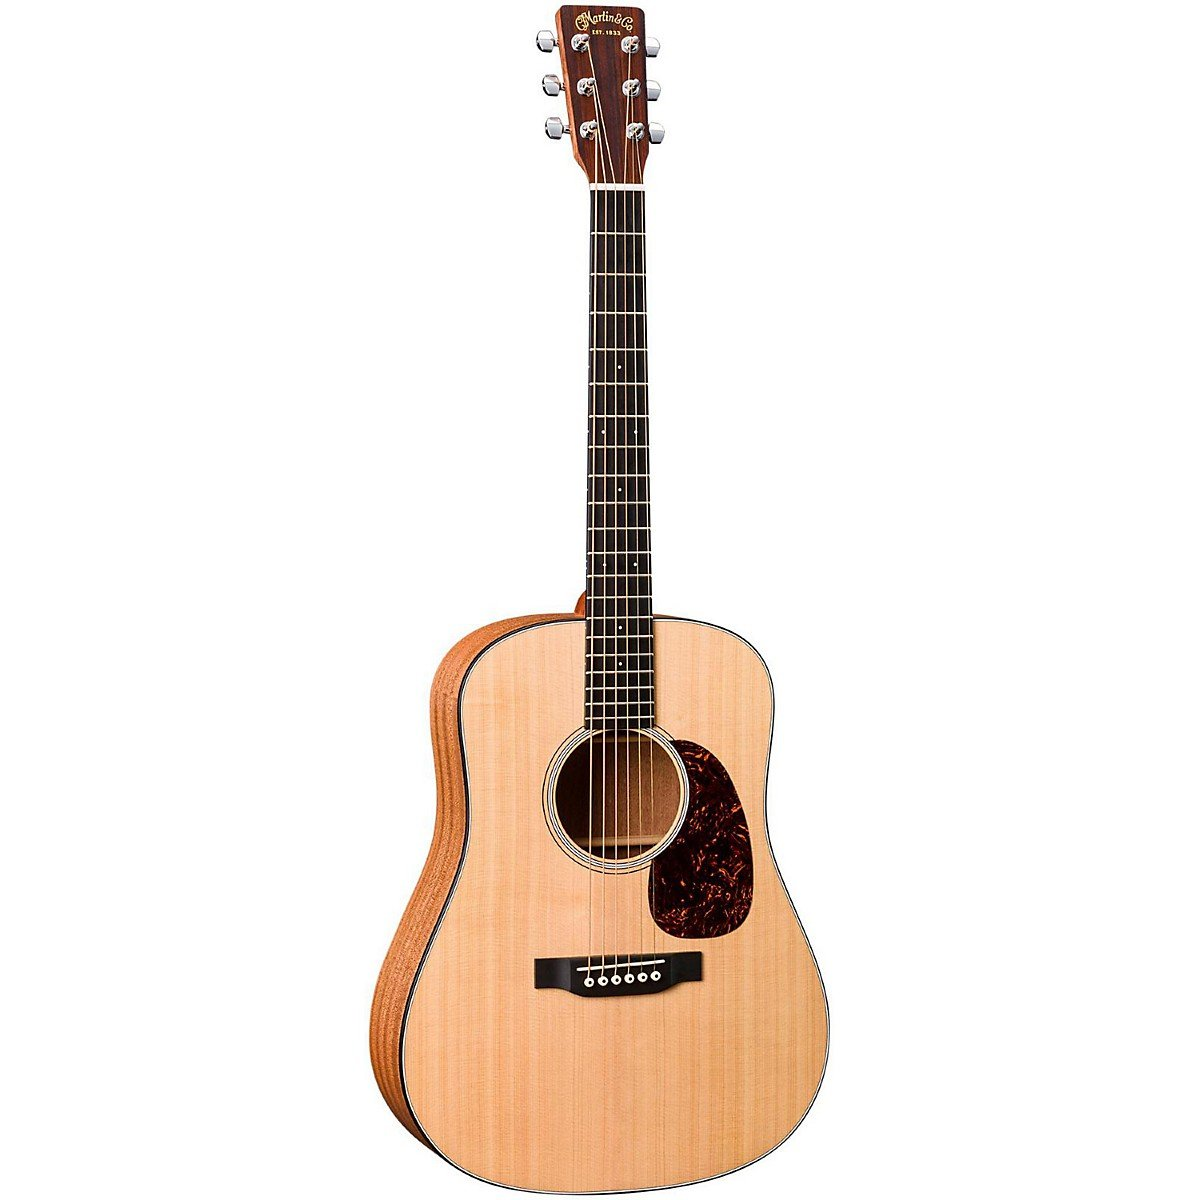 Top 10 Best Acoustic Guitar Under $500 to $1000 (2020 Reviews) 3